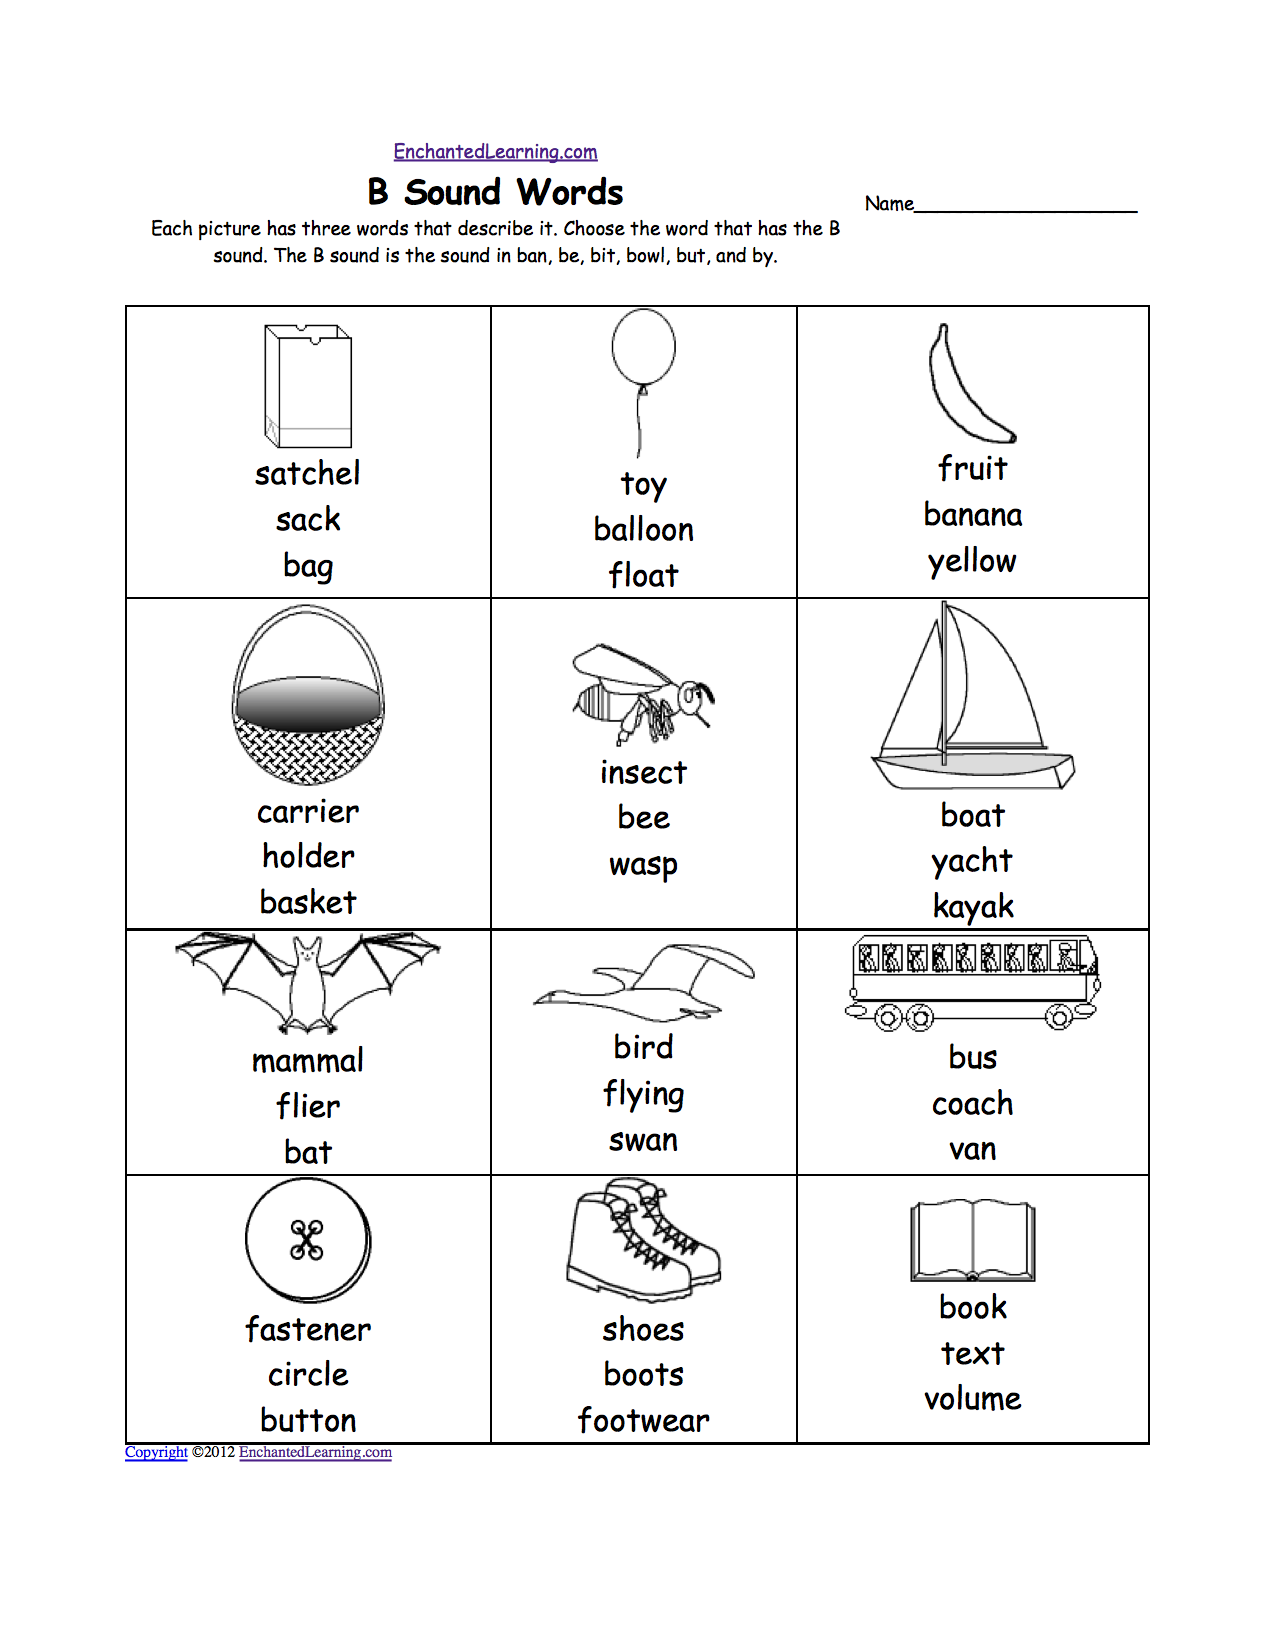 Proatmealus  Winsome Phonics Worksheets Multiple Choice Worksheets To Print  With Luxury Quotbquot Sound Phonics Worksheet Multiple Choice Each Picture Has Three Words That Describe It Choose The Word That Has A Quotbquot Sound The Quotbquot Sound Is The Sound  With Appealing D Nealian Handwriting Practice Worksheets Also Fraction Worksheet Pdf In Addition Dilations Geometry Worksheet And Acute Obtuse And Right Angles Worksheet As Well As Simplifying Fraction Worksheets Additionally Th Grade Fraction Worksheets From Enchantedlearningcom With Proatmealus  Luxury Phonics Worksheets Multiple Choice Worksheets To Print  With Appealing Quotbquot Sound Phonics Worksheet Multiple Choice Each Picture Has Three Words That Describe It Choose The Word That Has A Quotbquot Sound The Quotbquot Sound Is The Sound  And Winsome D Nealian Handwriting Practice Worksheets Also Fraction Worksheet Pdf In Addition Dilations Geometry Worksheet From Enchantedlearningcom